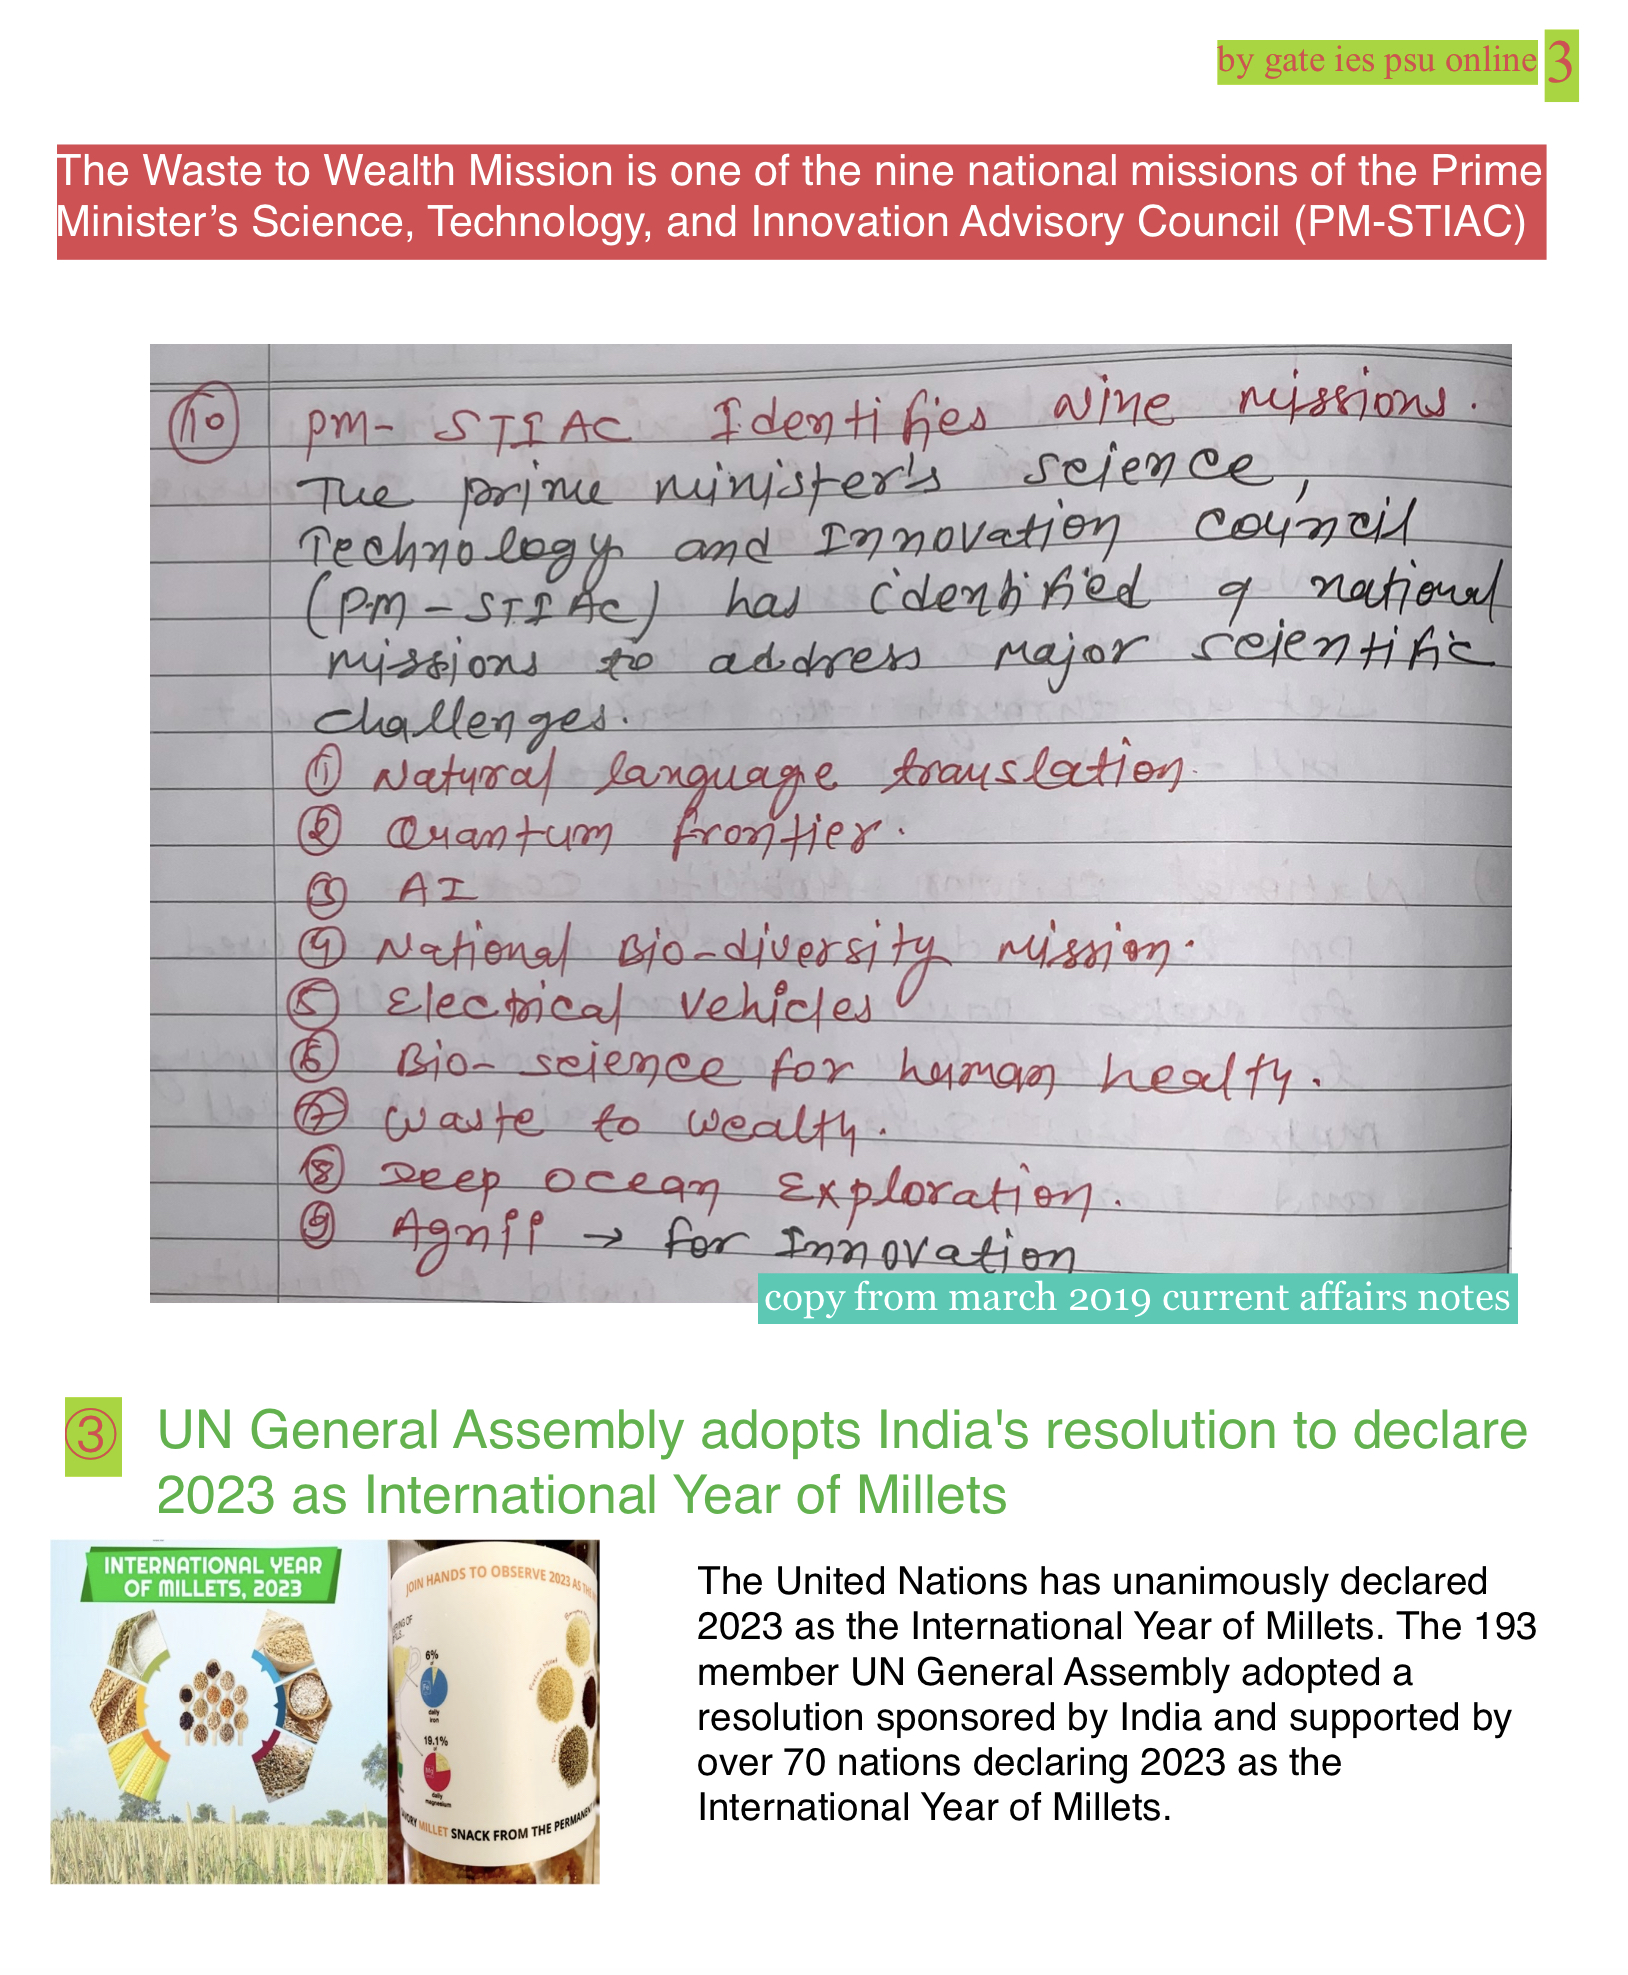 UNGA 2023 international year's of millets upsc current affairs